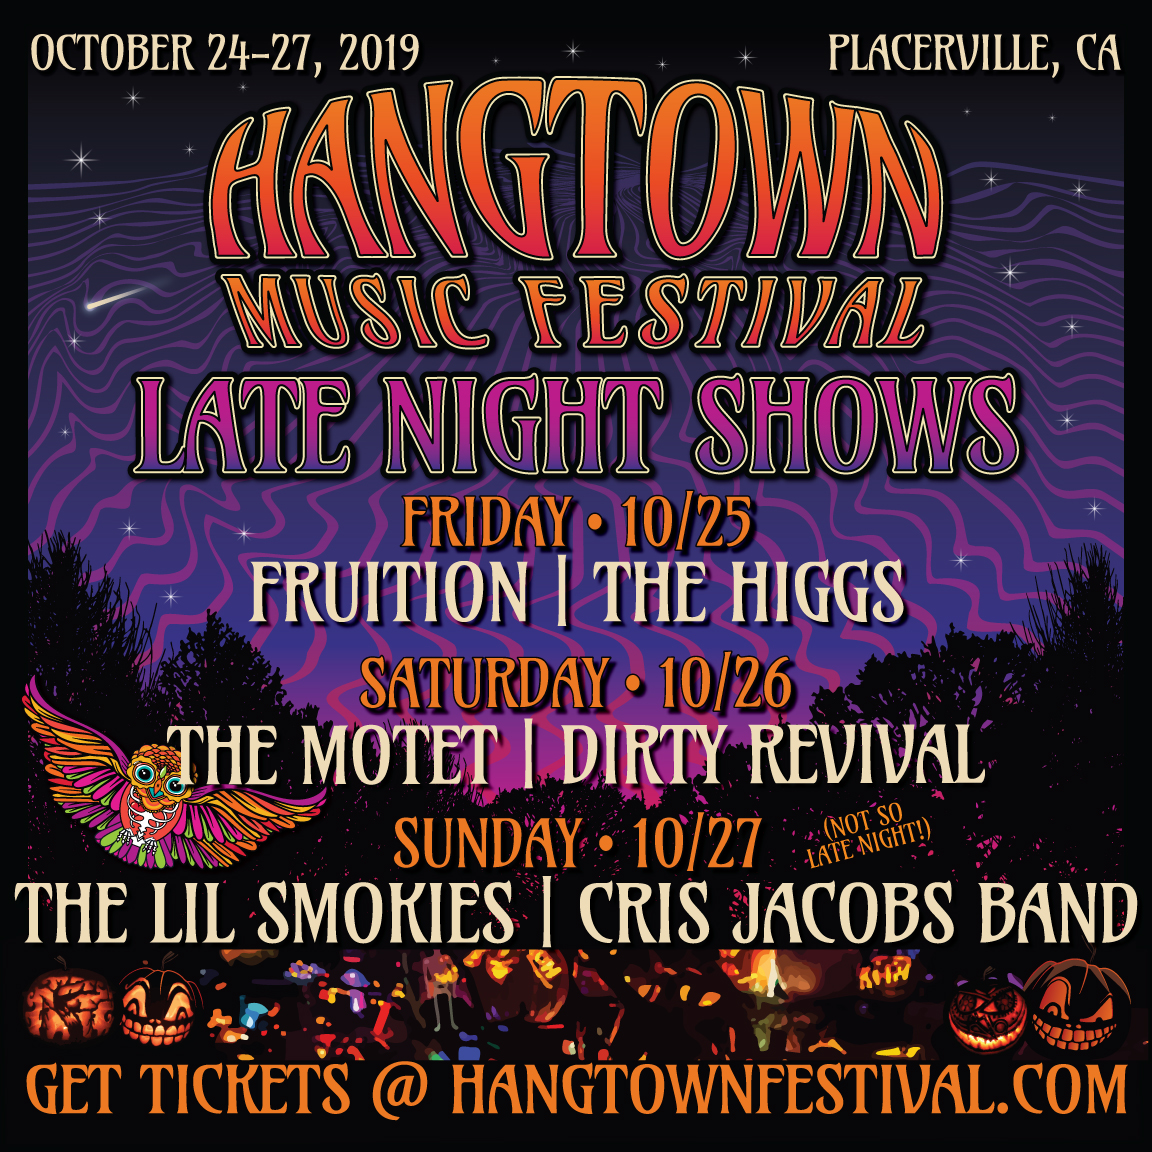 Late Night Shows - Hangtown Festival